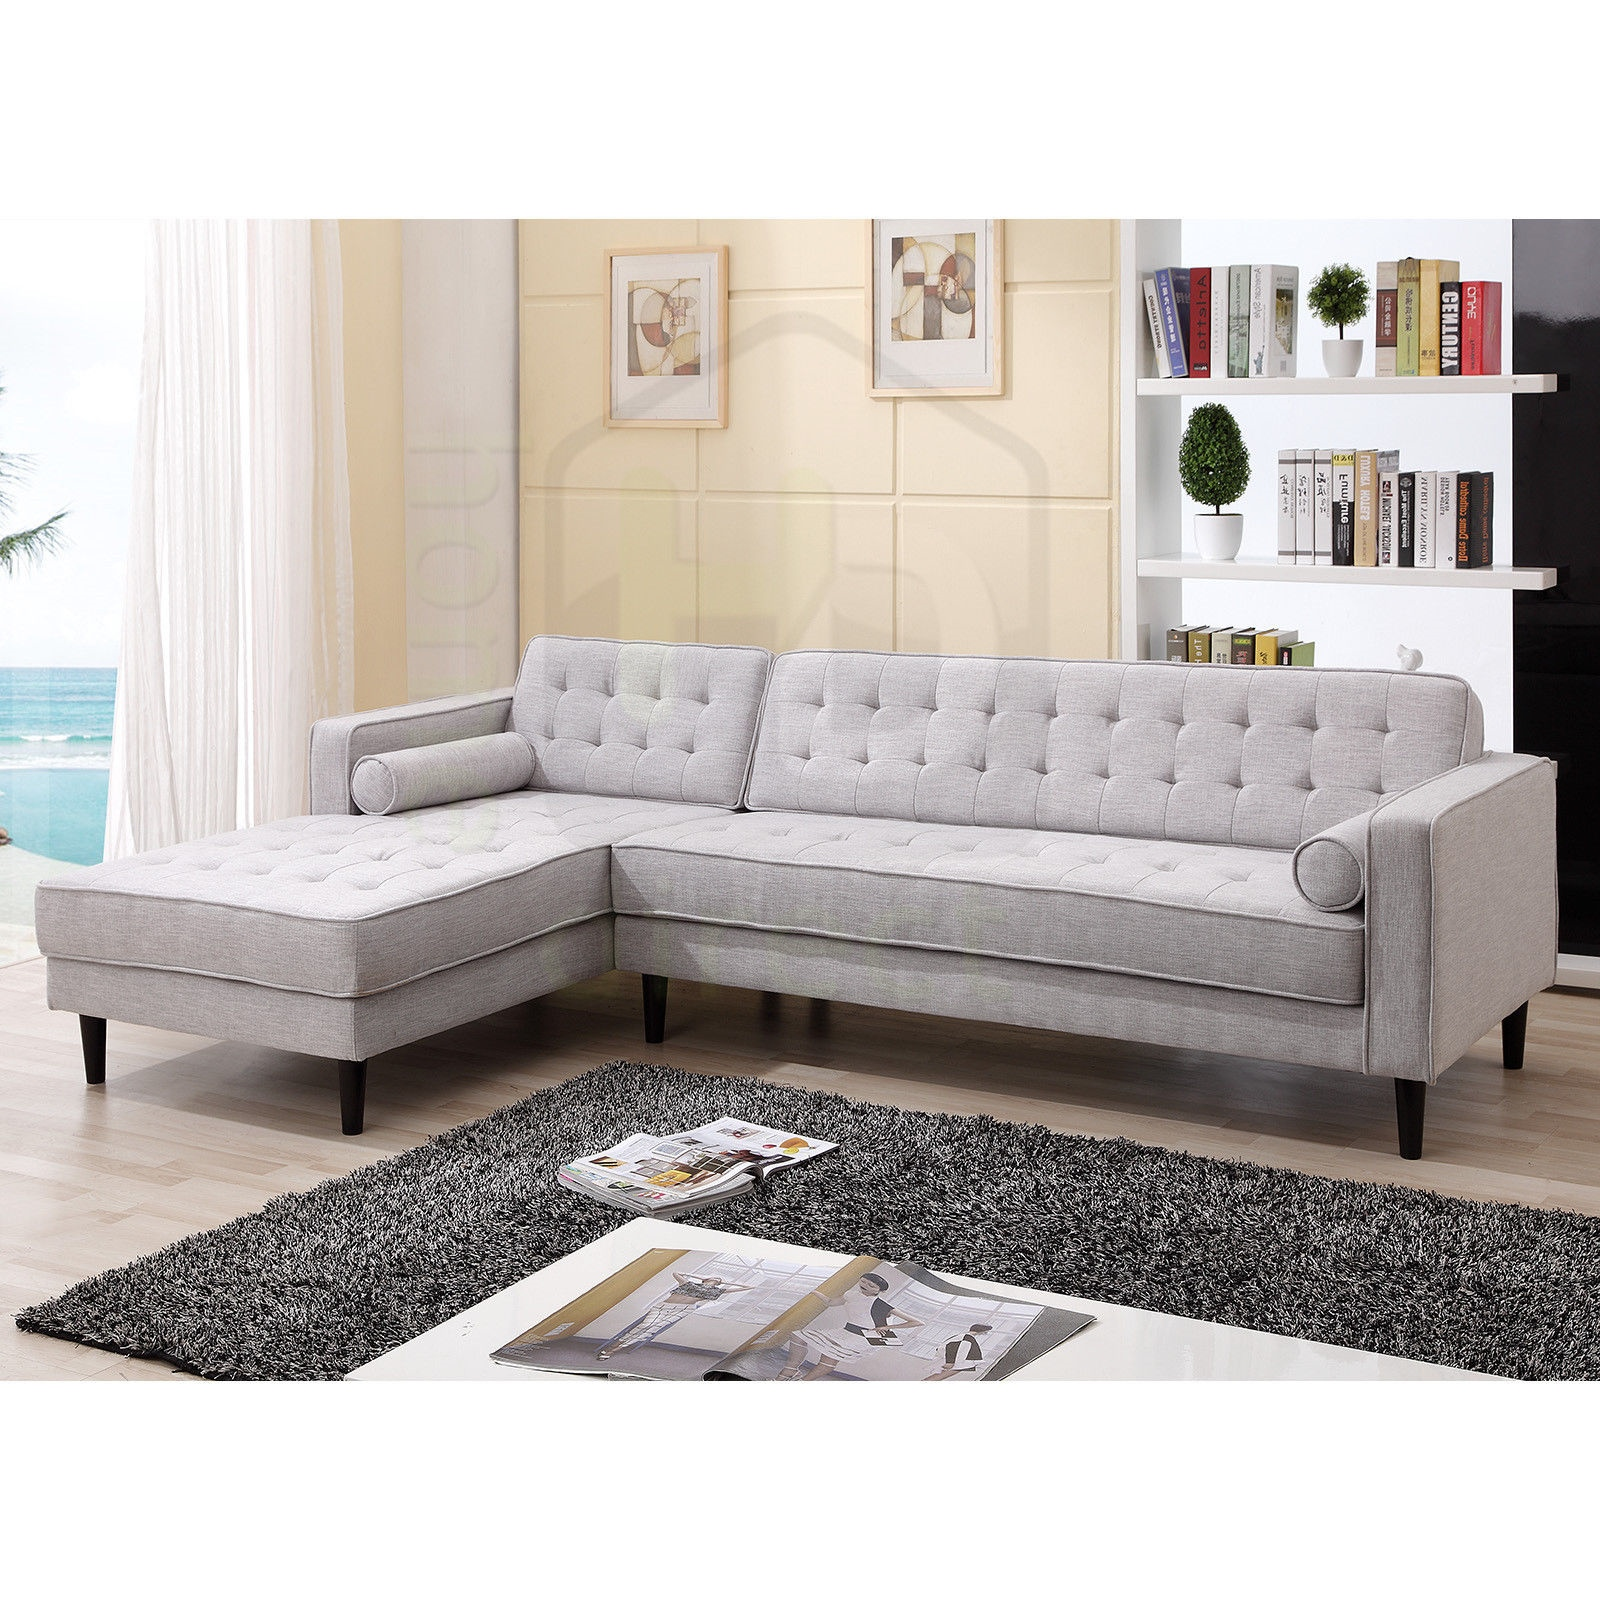 Details about aiden scandinavian sofa with chaise left